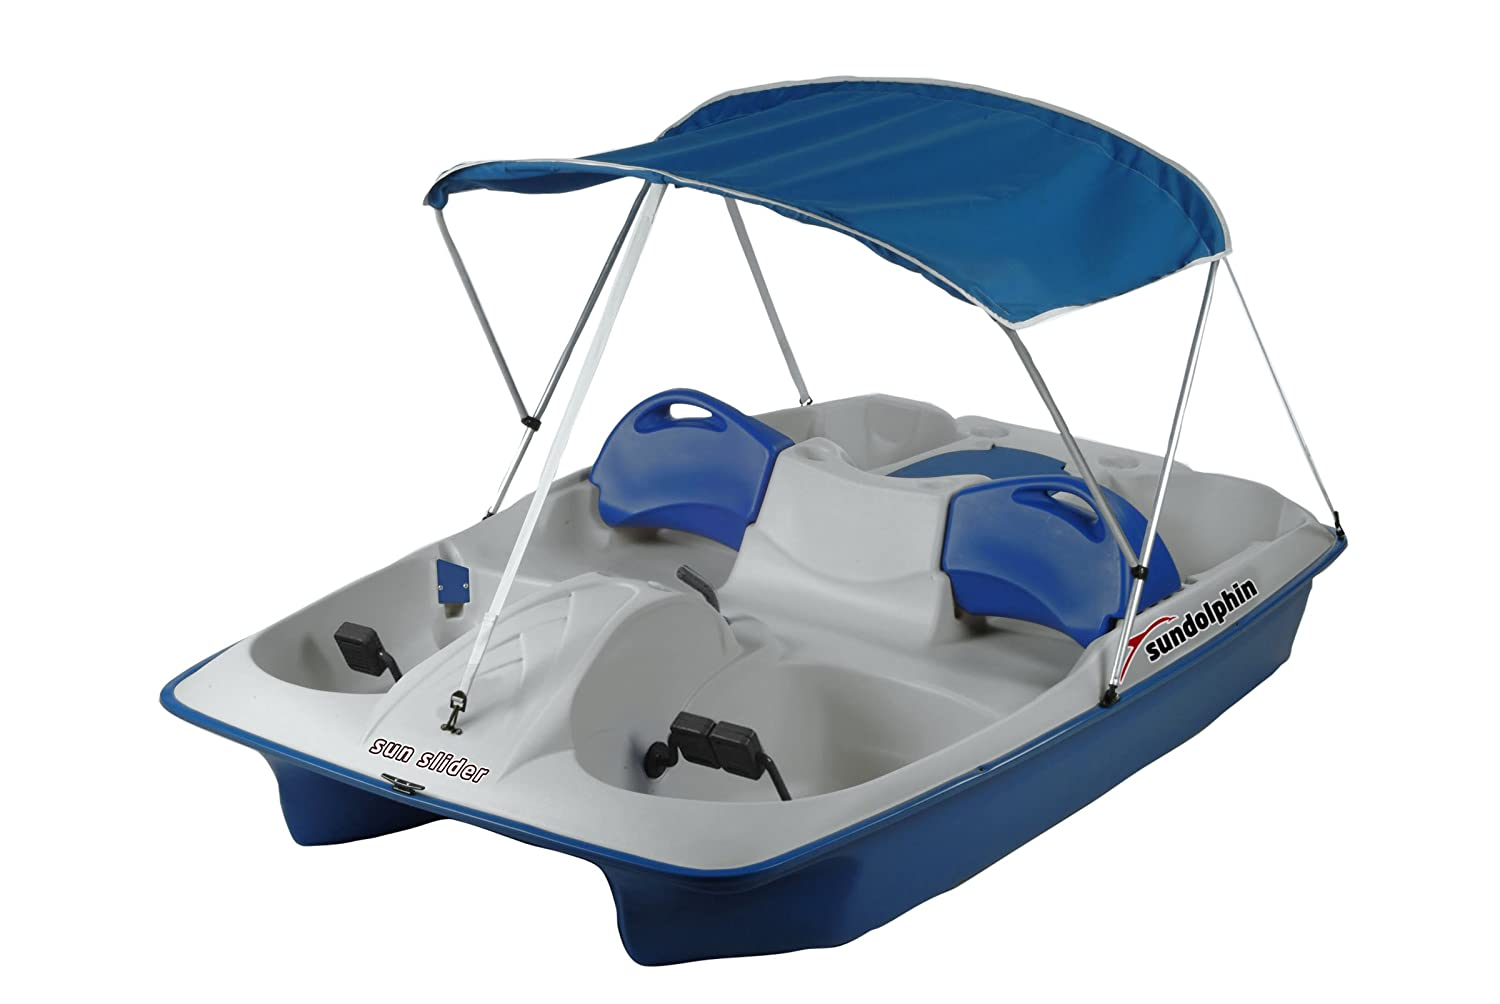 Sun Dolphin 72143 Adjustable Pedal Boat with Canopy, 5 Person